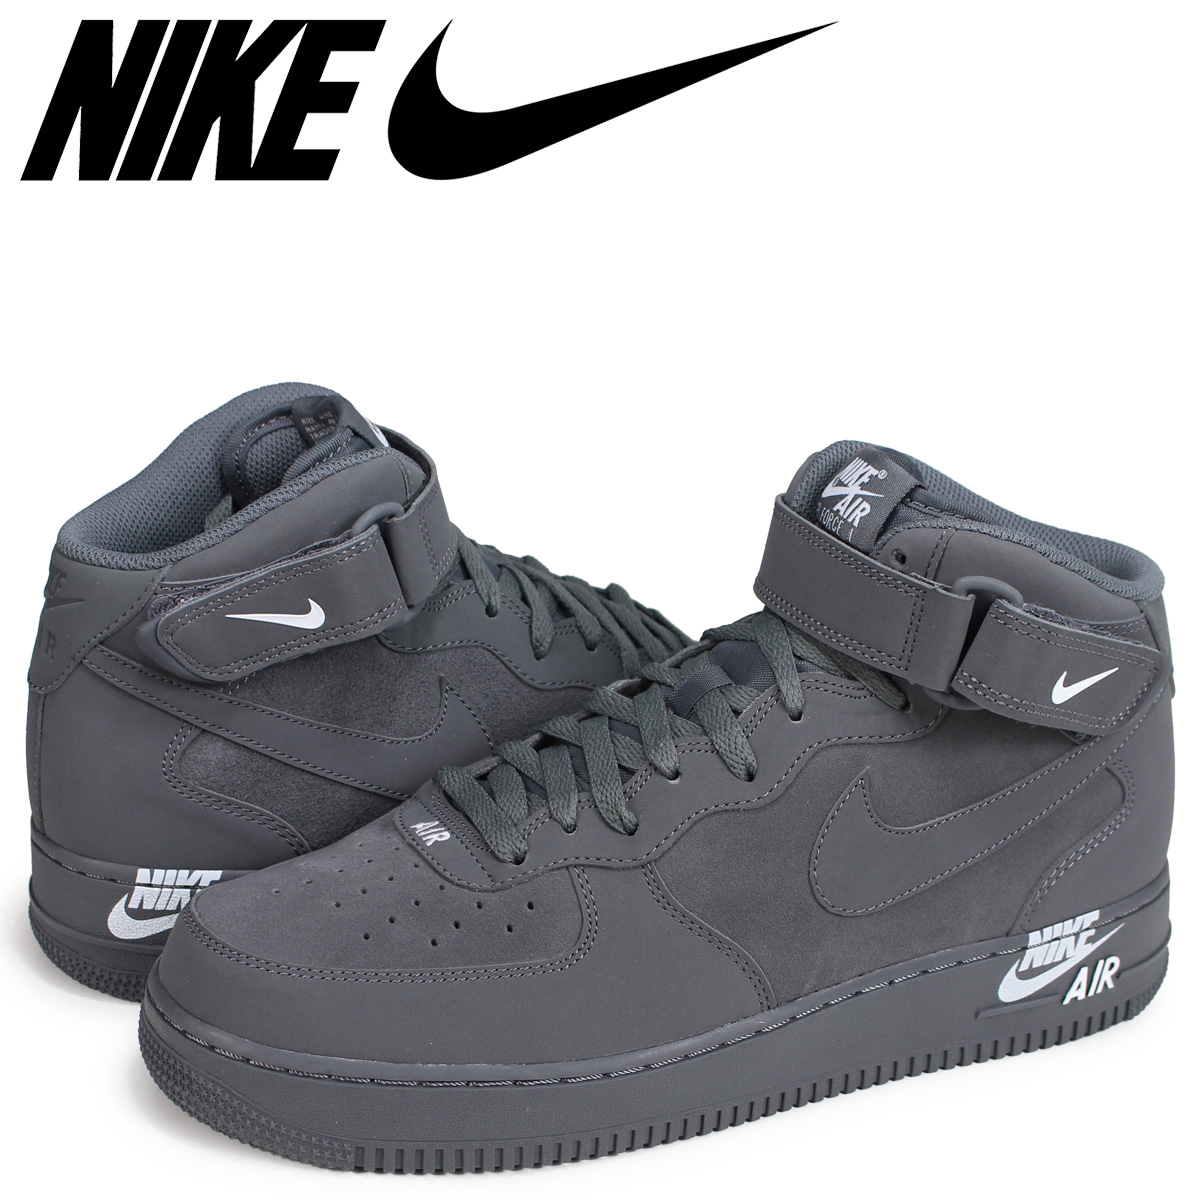 online retailer 0e74c 0df0f NIKE AIR FORCE 1 MID 07 Nike air force 1 sneakers men dark gray 315,123-048